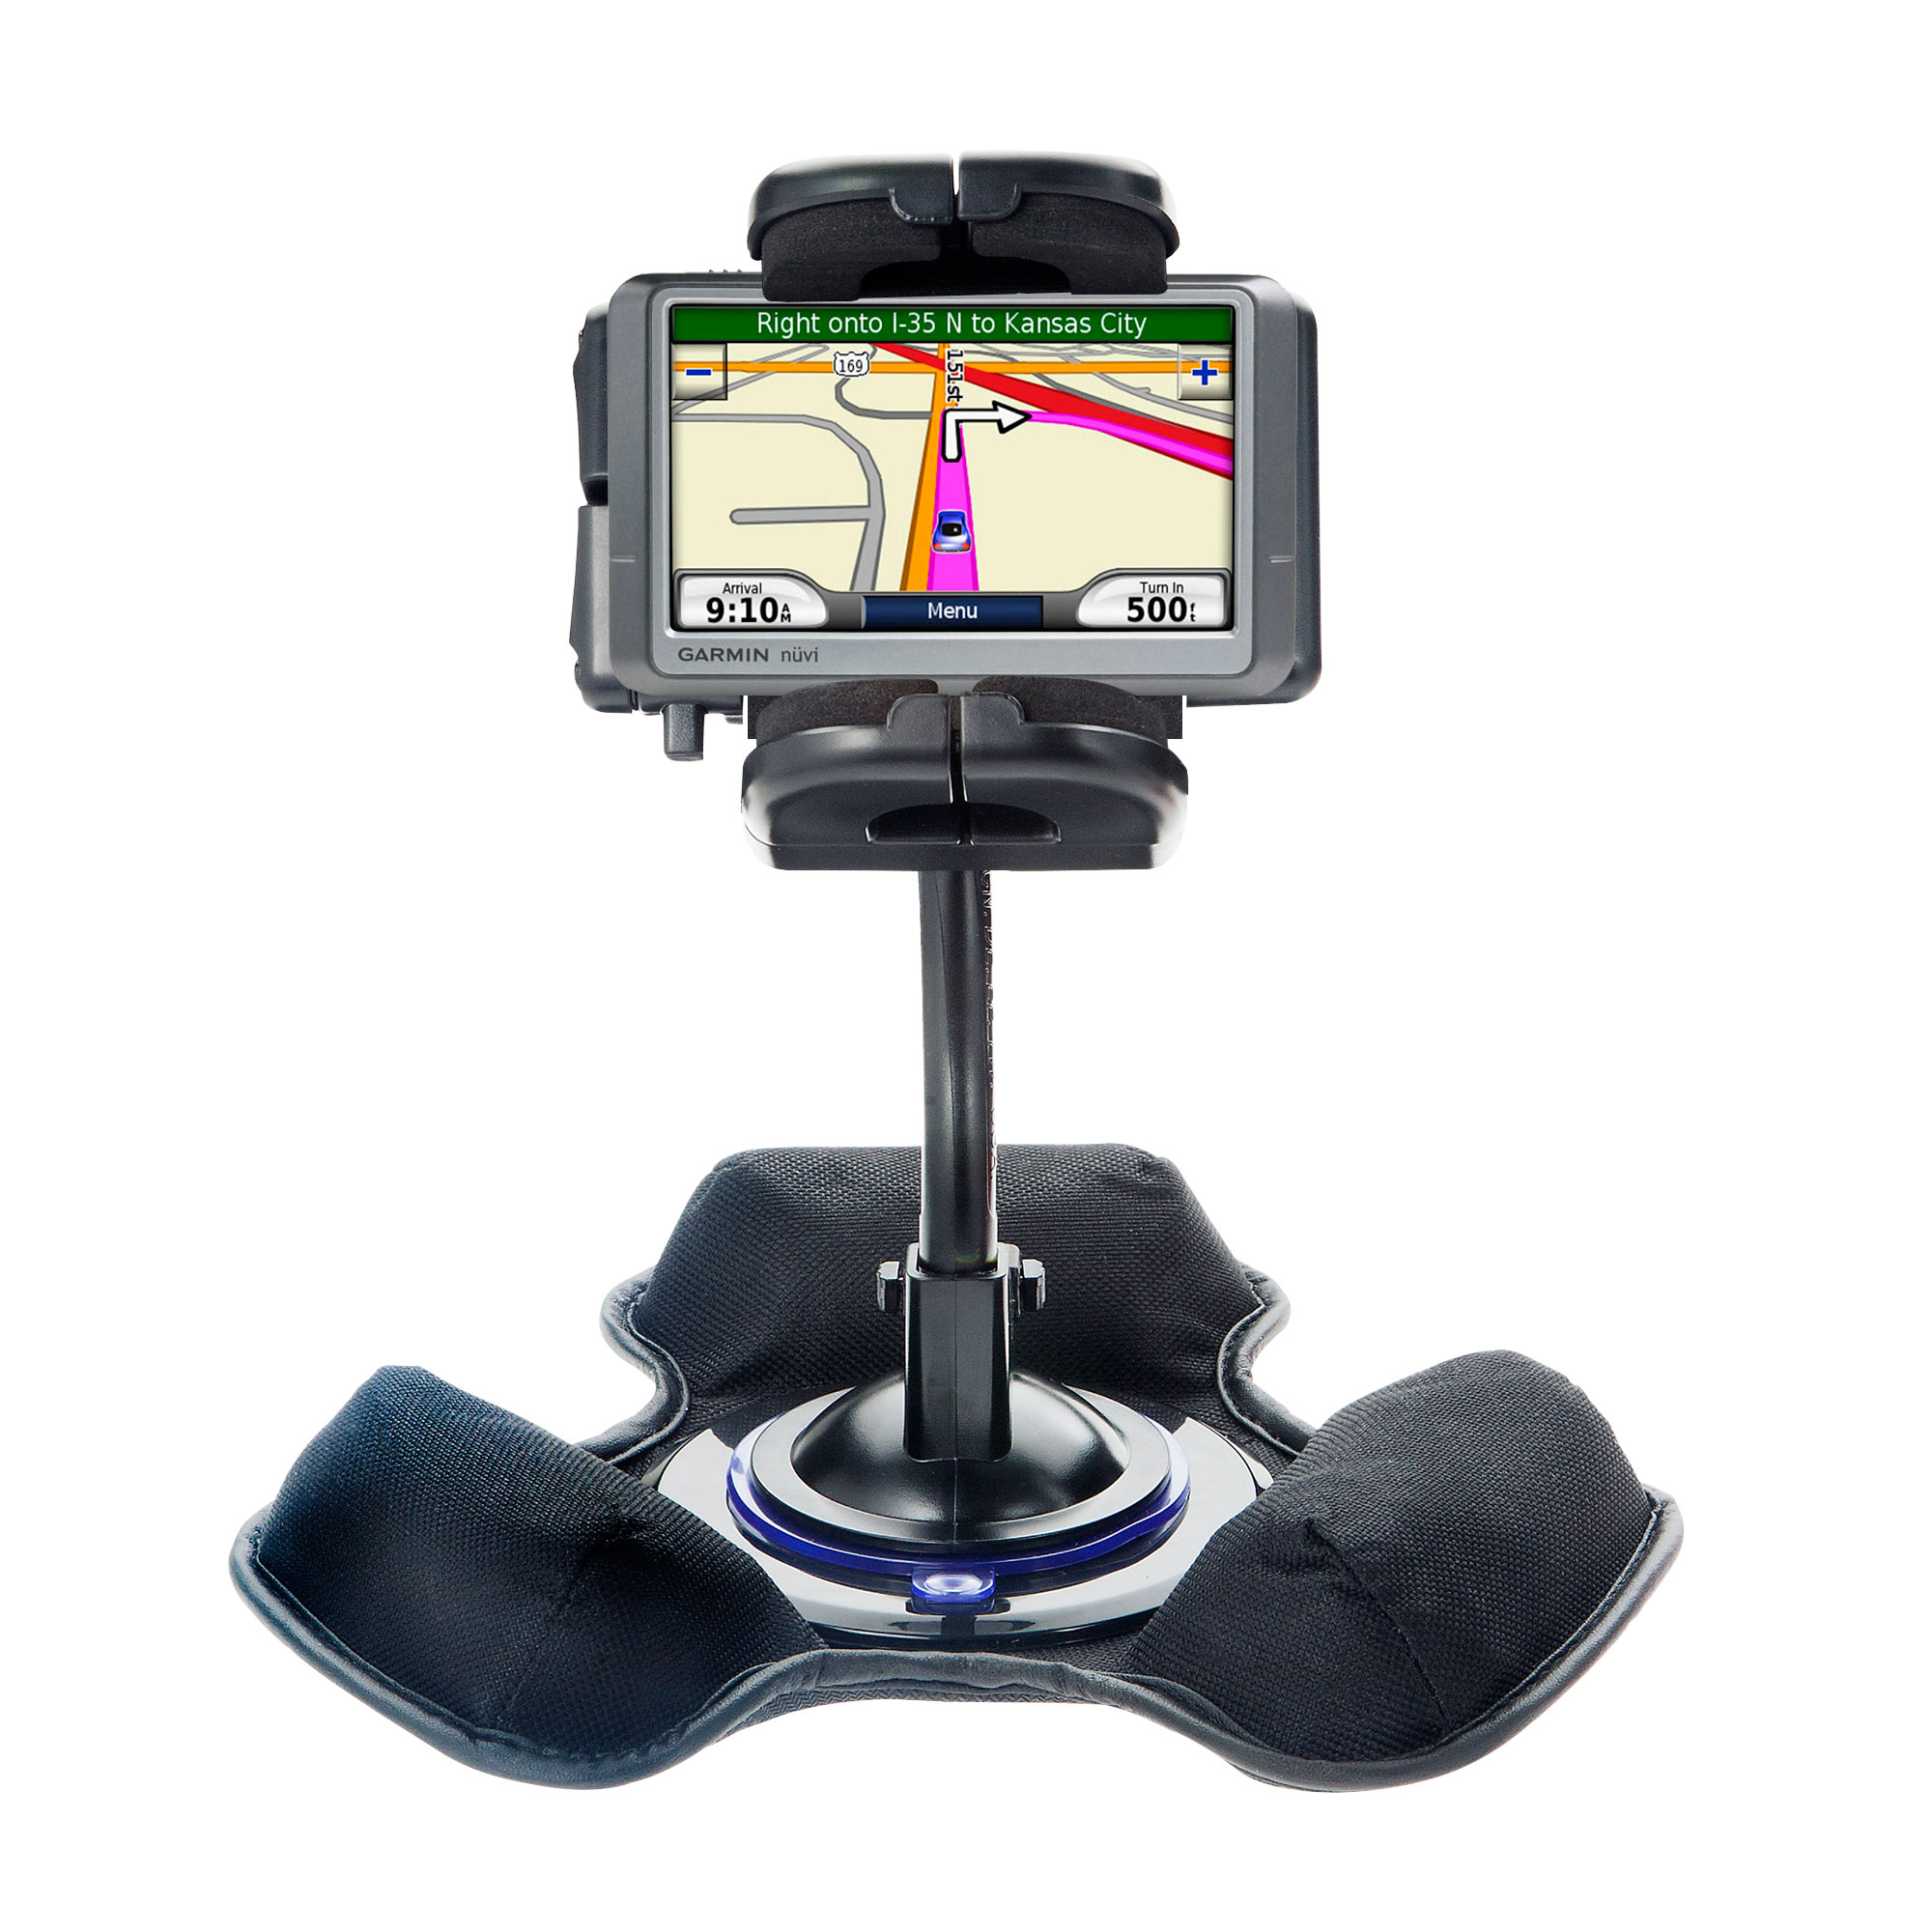 Dash and Windshield Holder compatible with the Garmin nuvi 250W